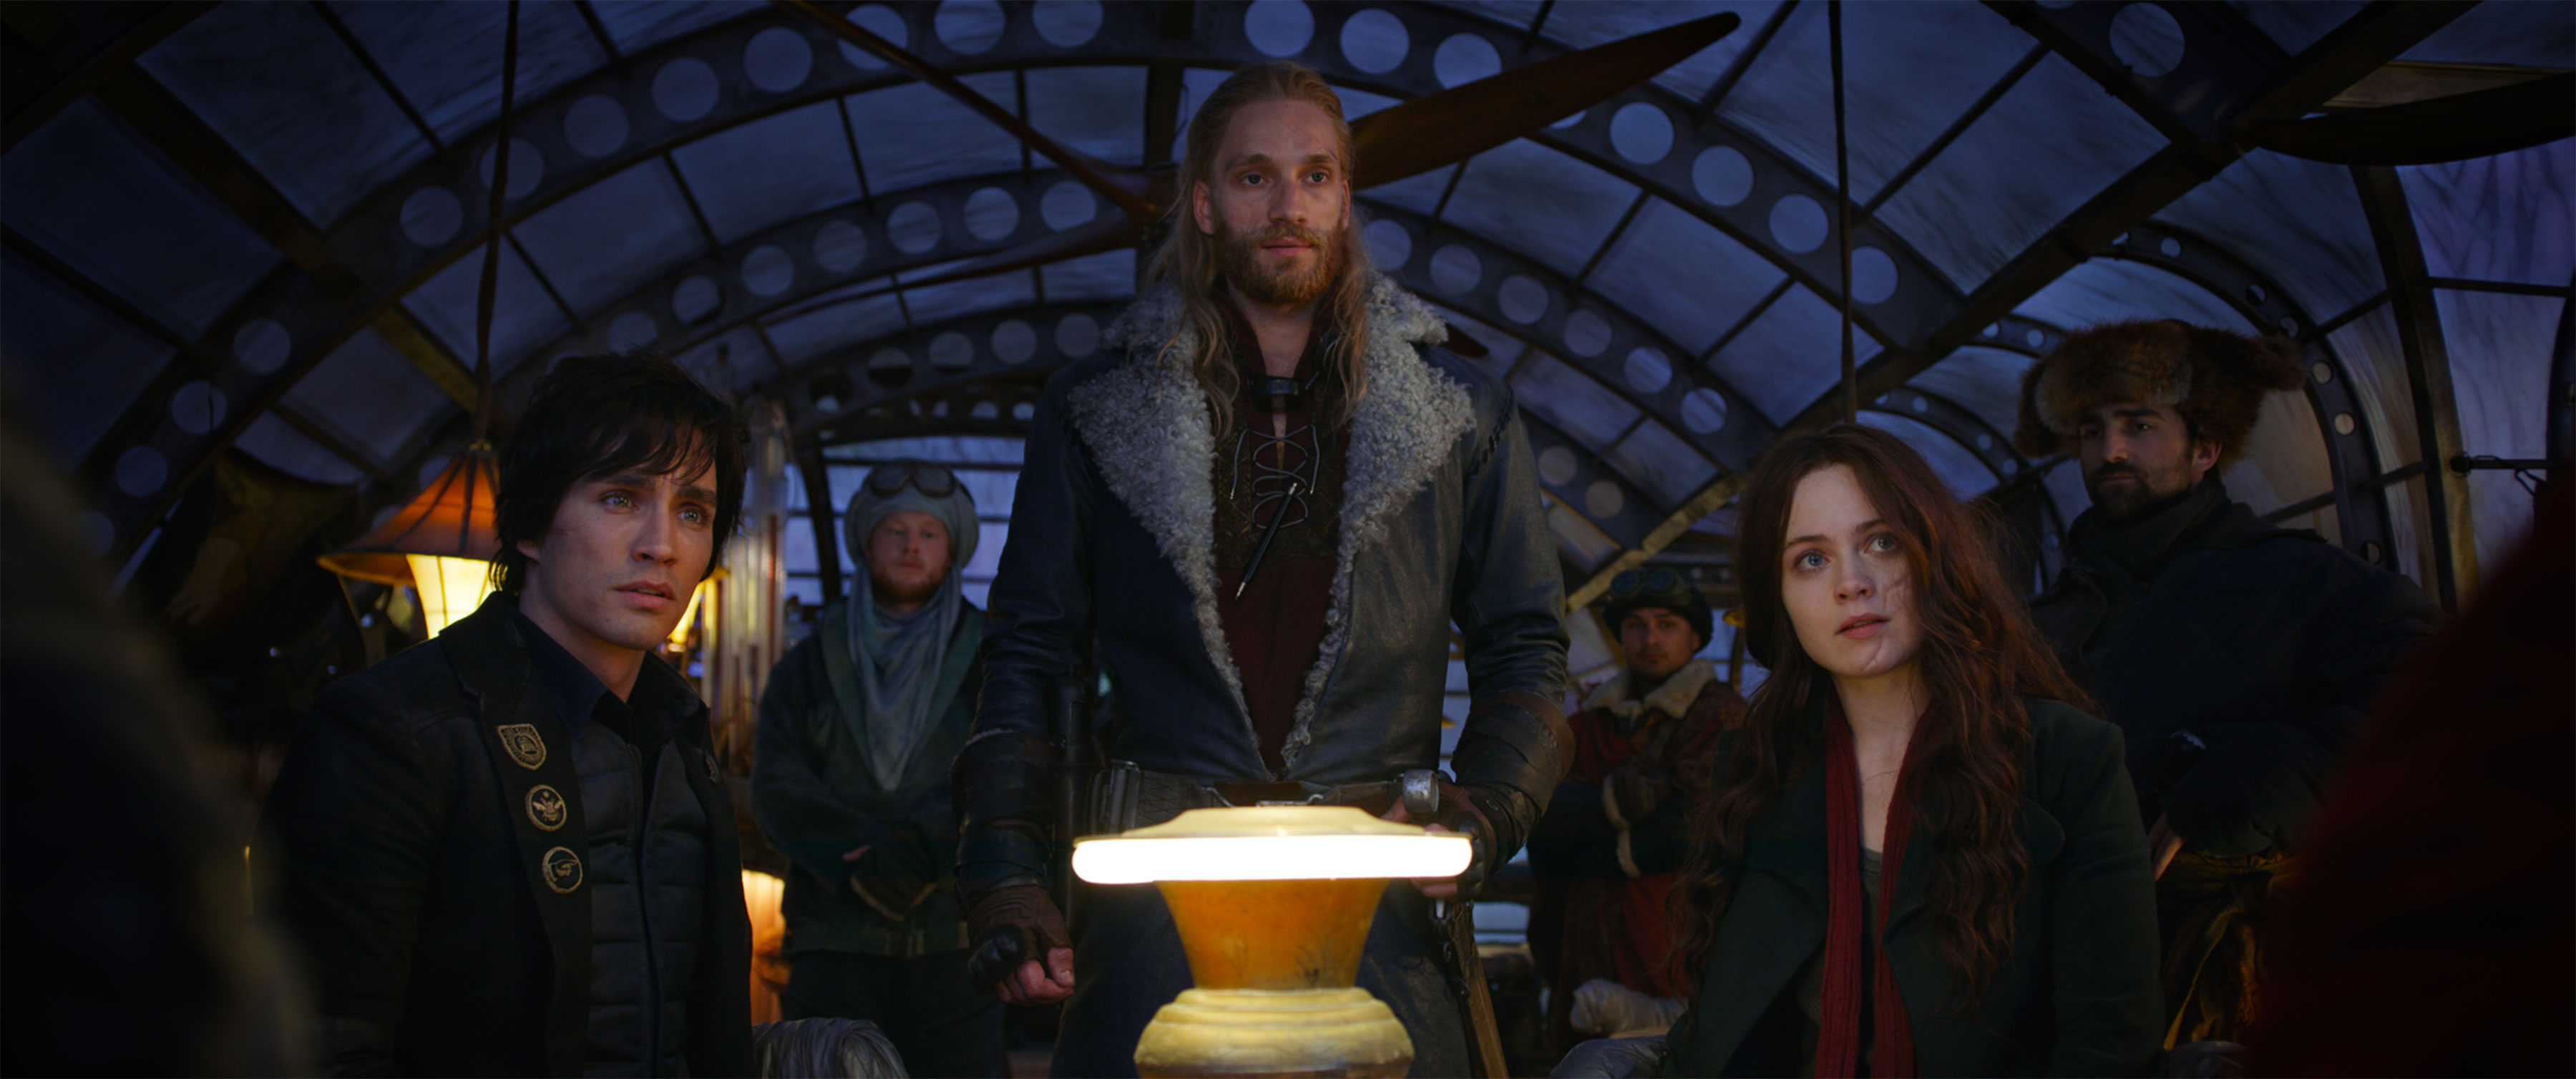 Robert Sheehan and Hera Hilmar in MORTAL ENGINES (2018)